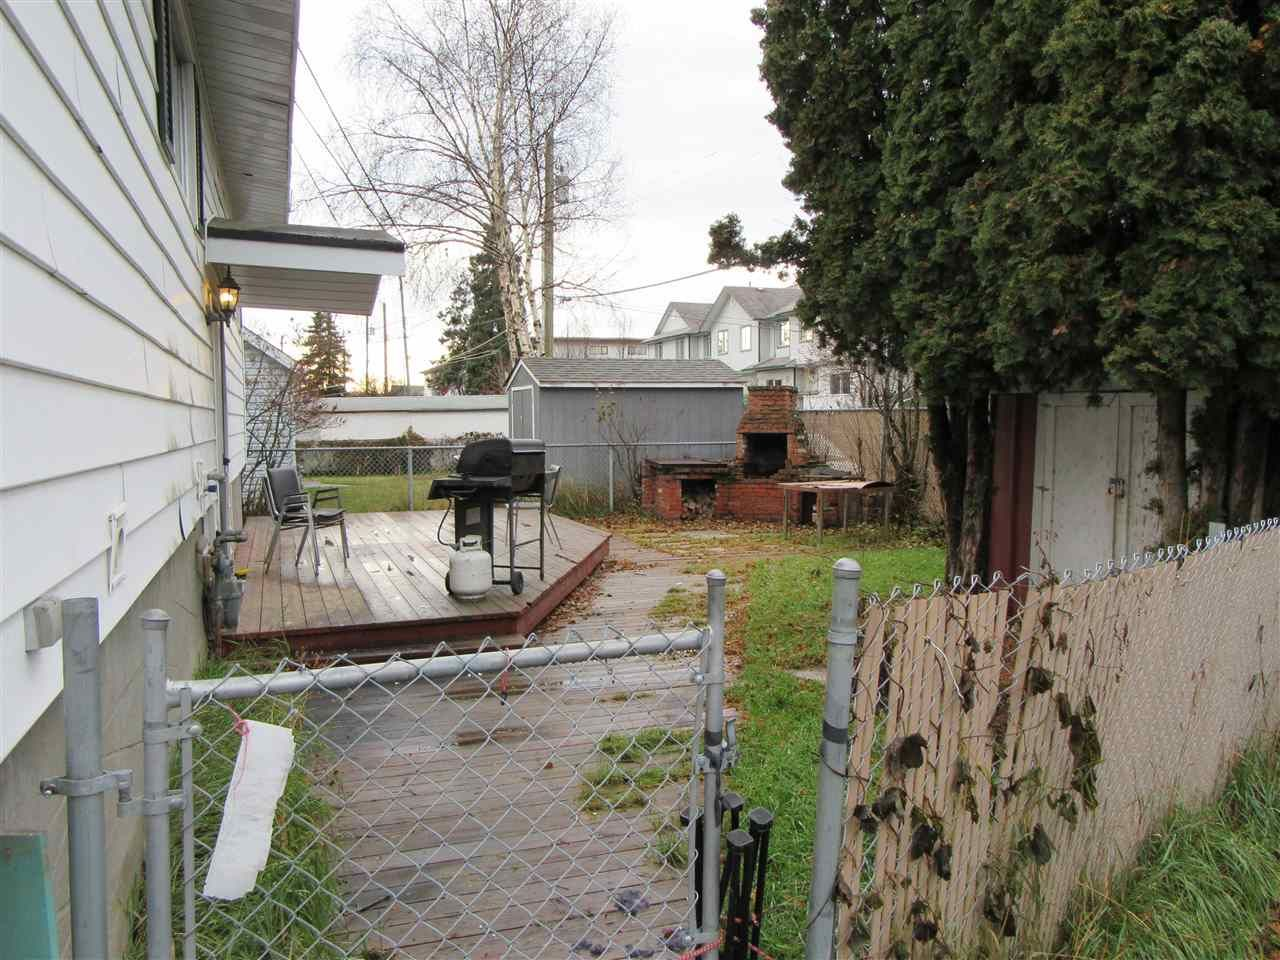 Photo 4: Photos: 1737 REDWOOD Street in Prince George: Van Bow House for sale (PG City Central (Zone 72))  : MLS®# R2417839